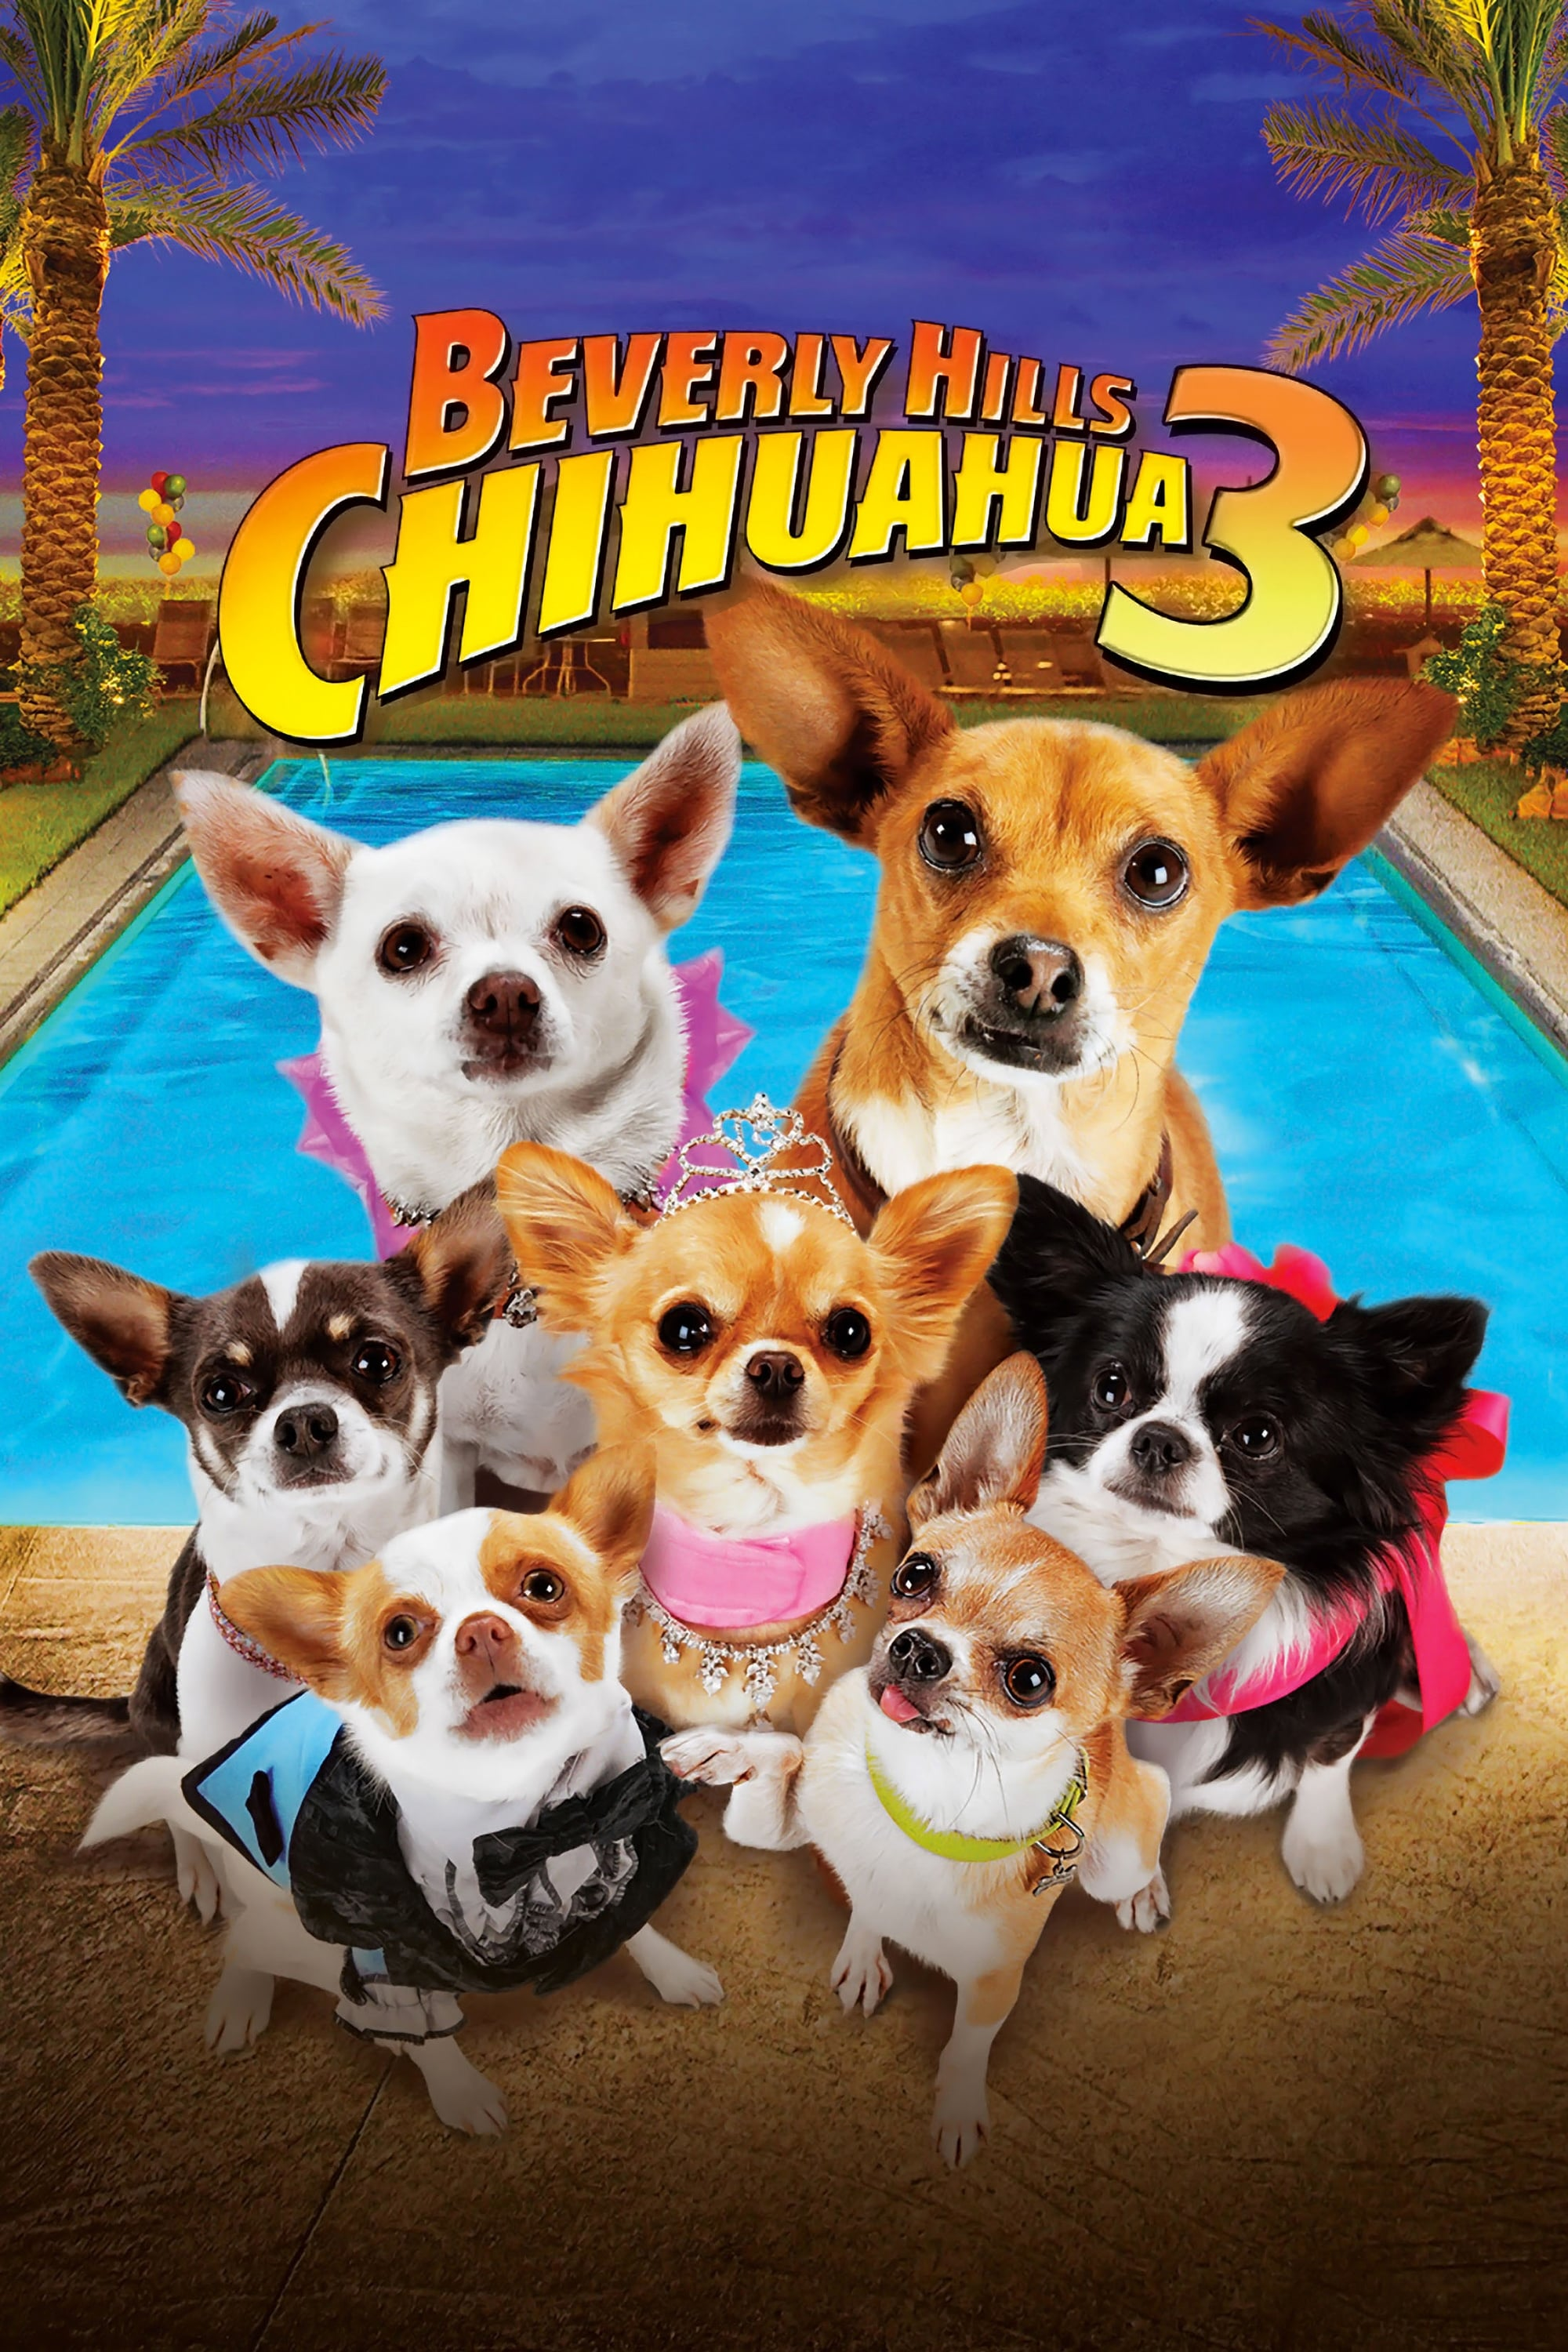 Beverly Hills Chihuahua 3 Ganzer Film Deutsch